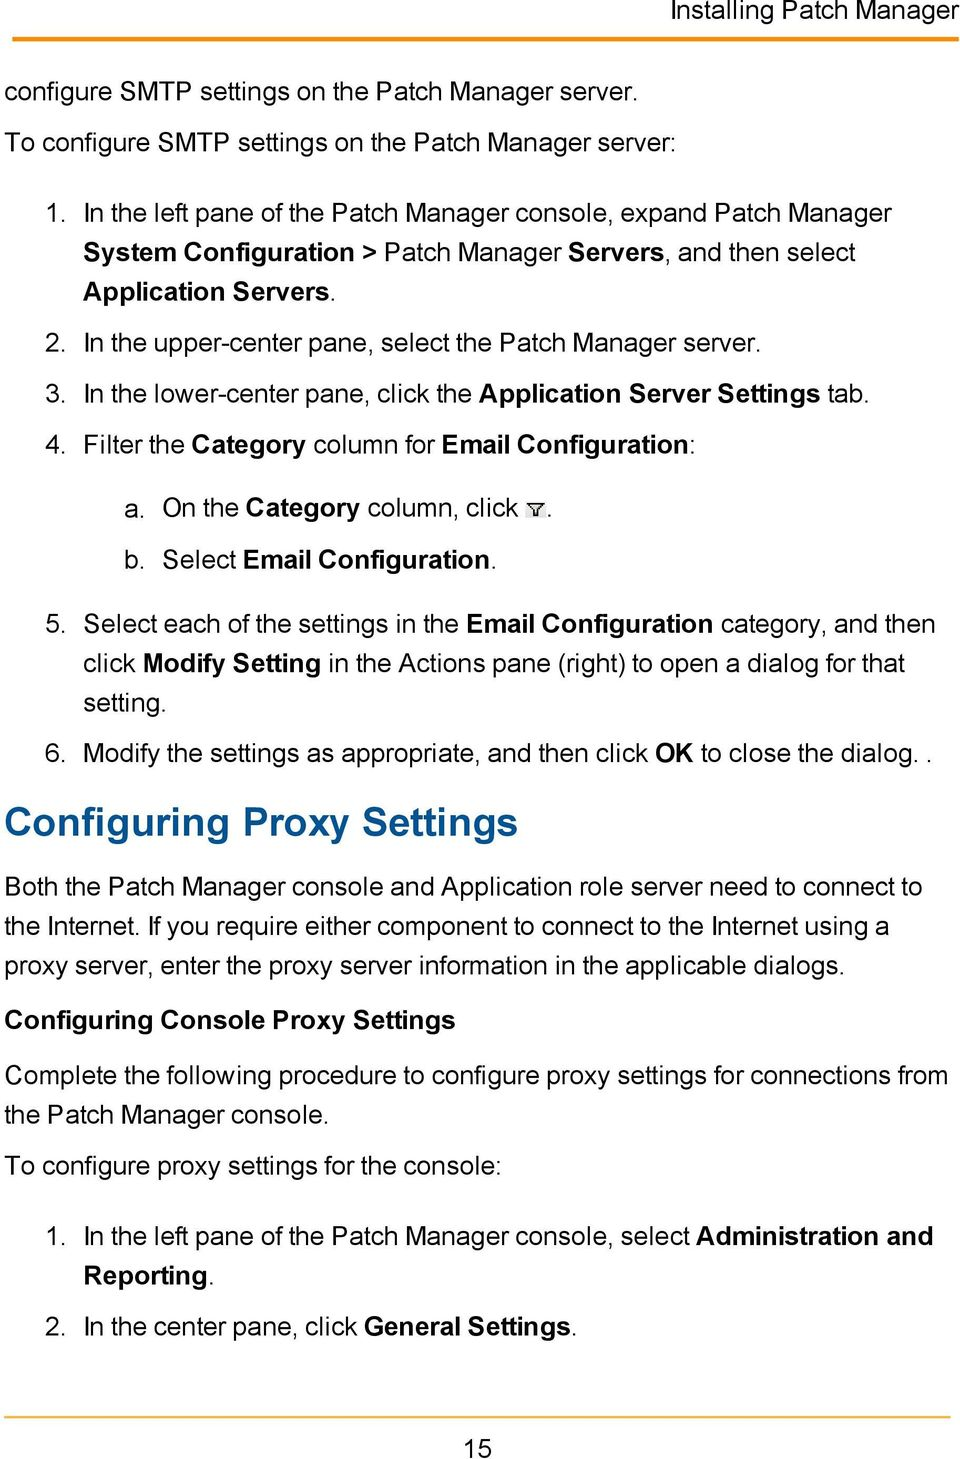 In the upper-center pane, select the Patch Manager server. 3. In the lower-center pane, click the Application Server Settings tab. 4. Filter the Category column for Email Configuration: a.